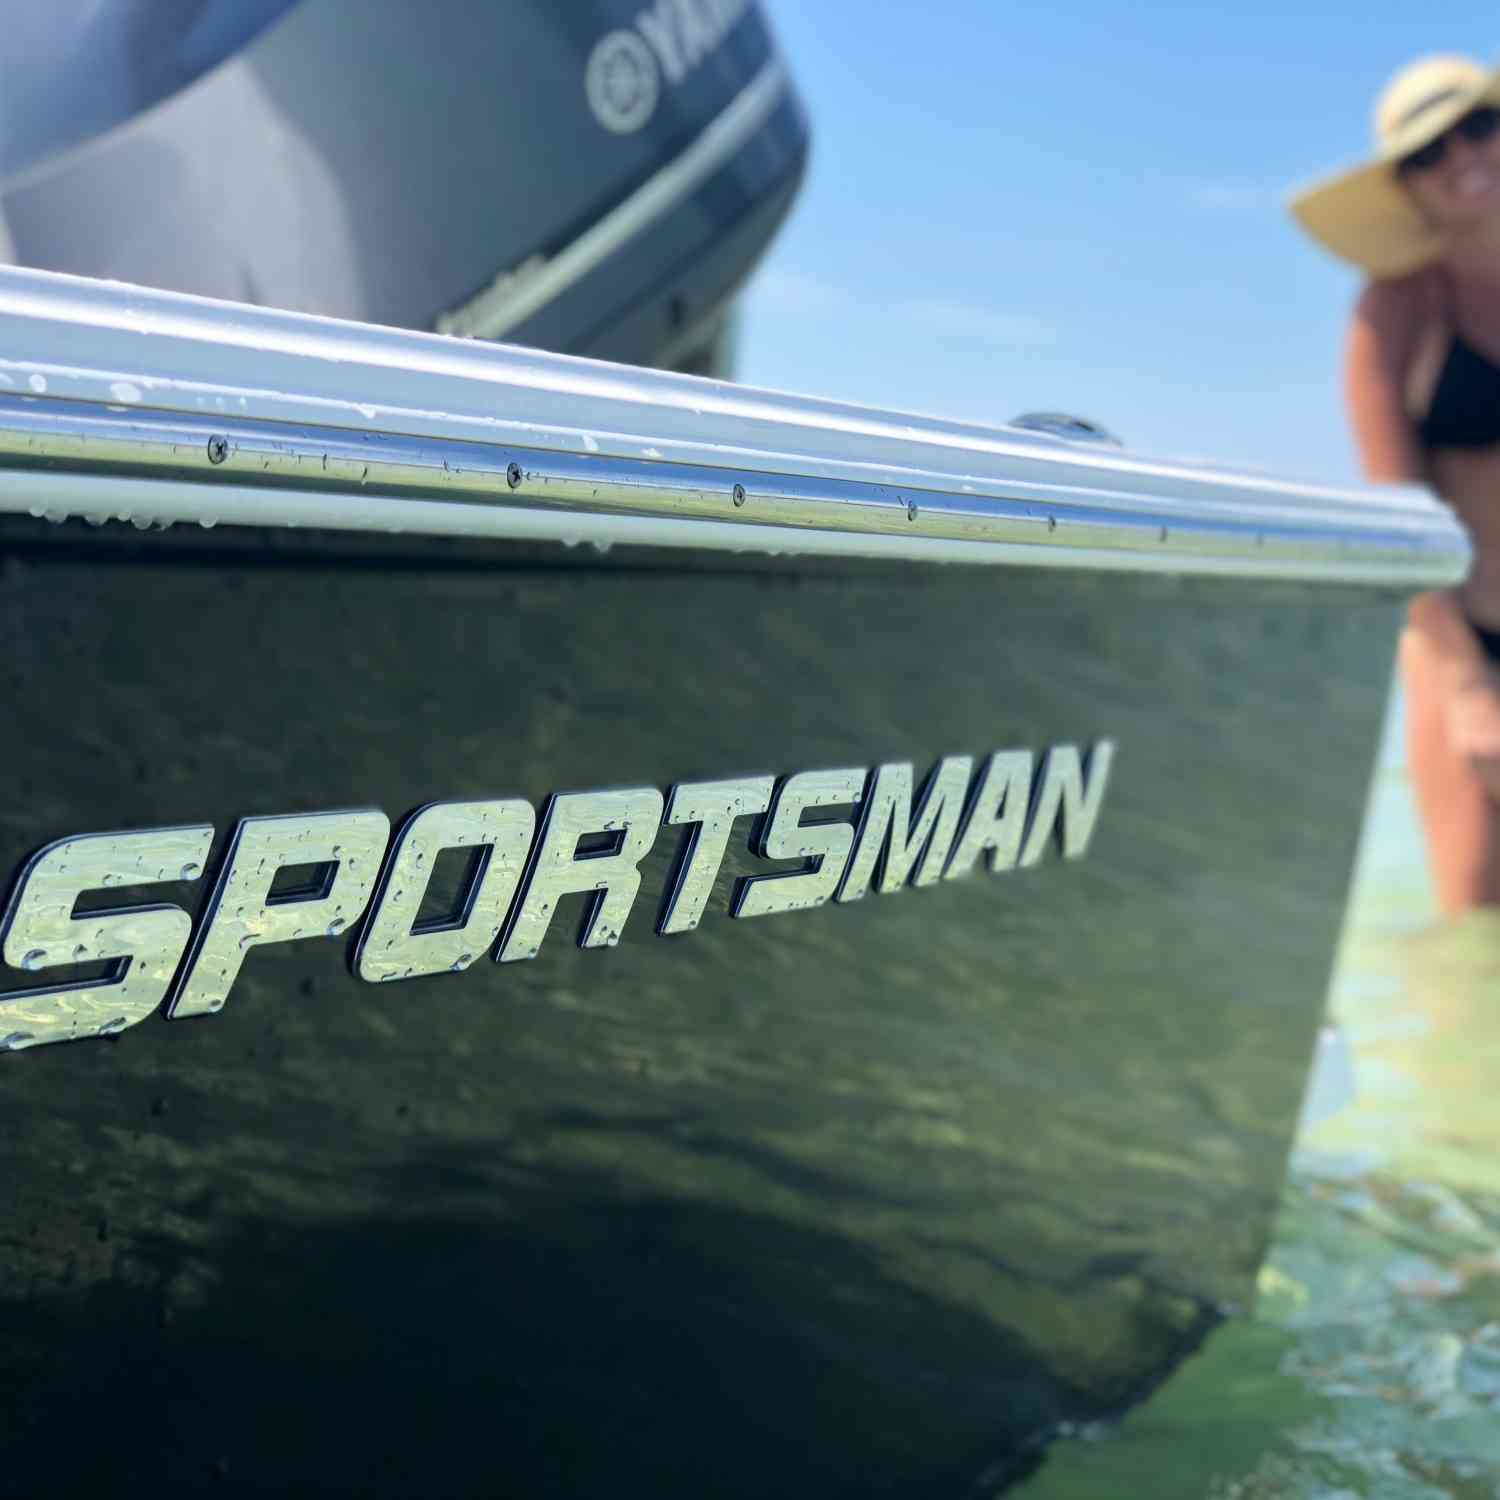 Title: Good lookin - On board their Sportsman Masters 247 Bay Boat - Location: Naples Fl. Participating in the Photo Contest #SportsmanSeptember2018